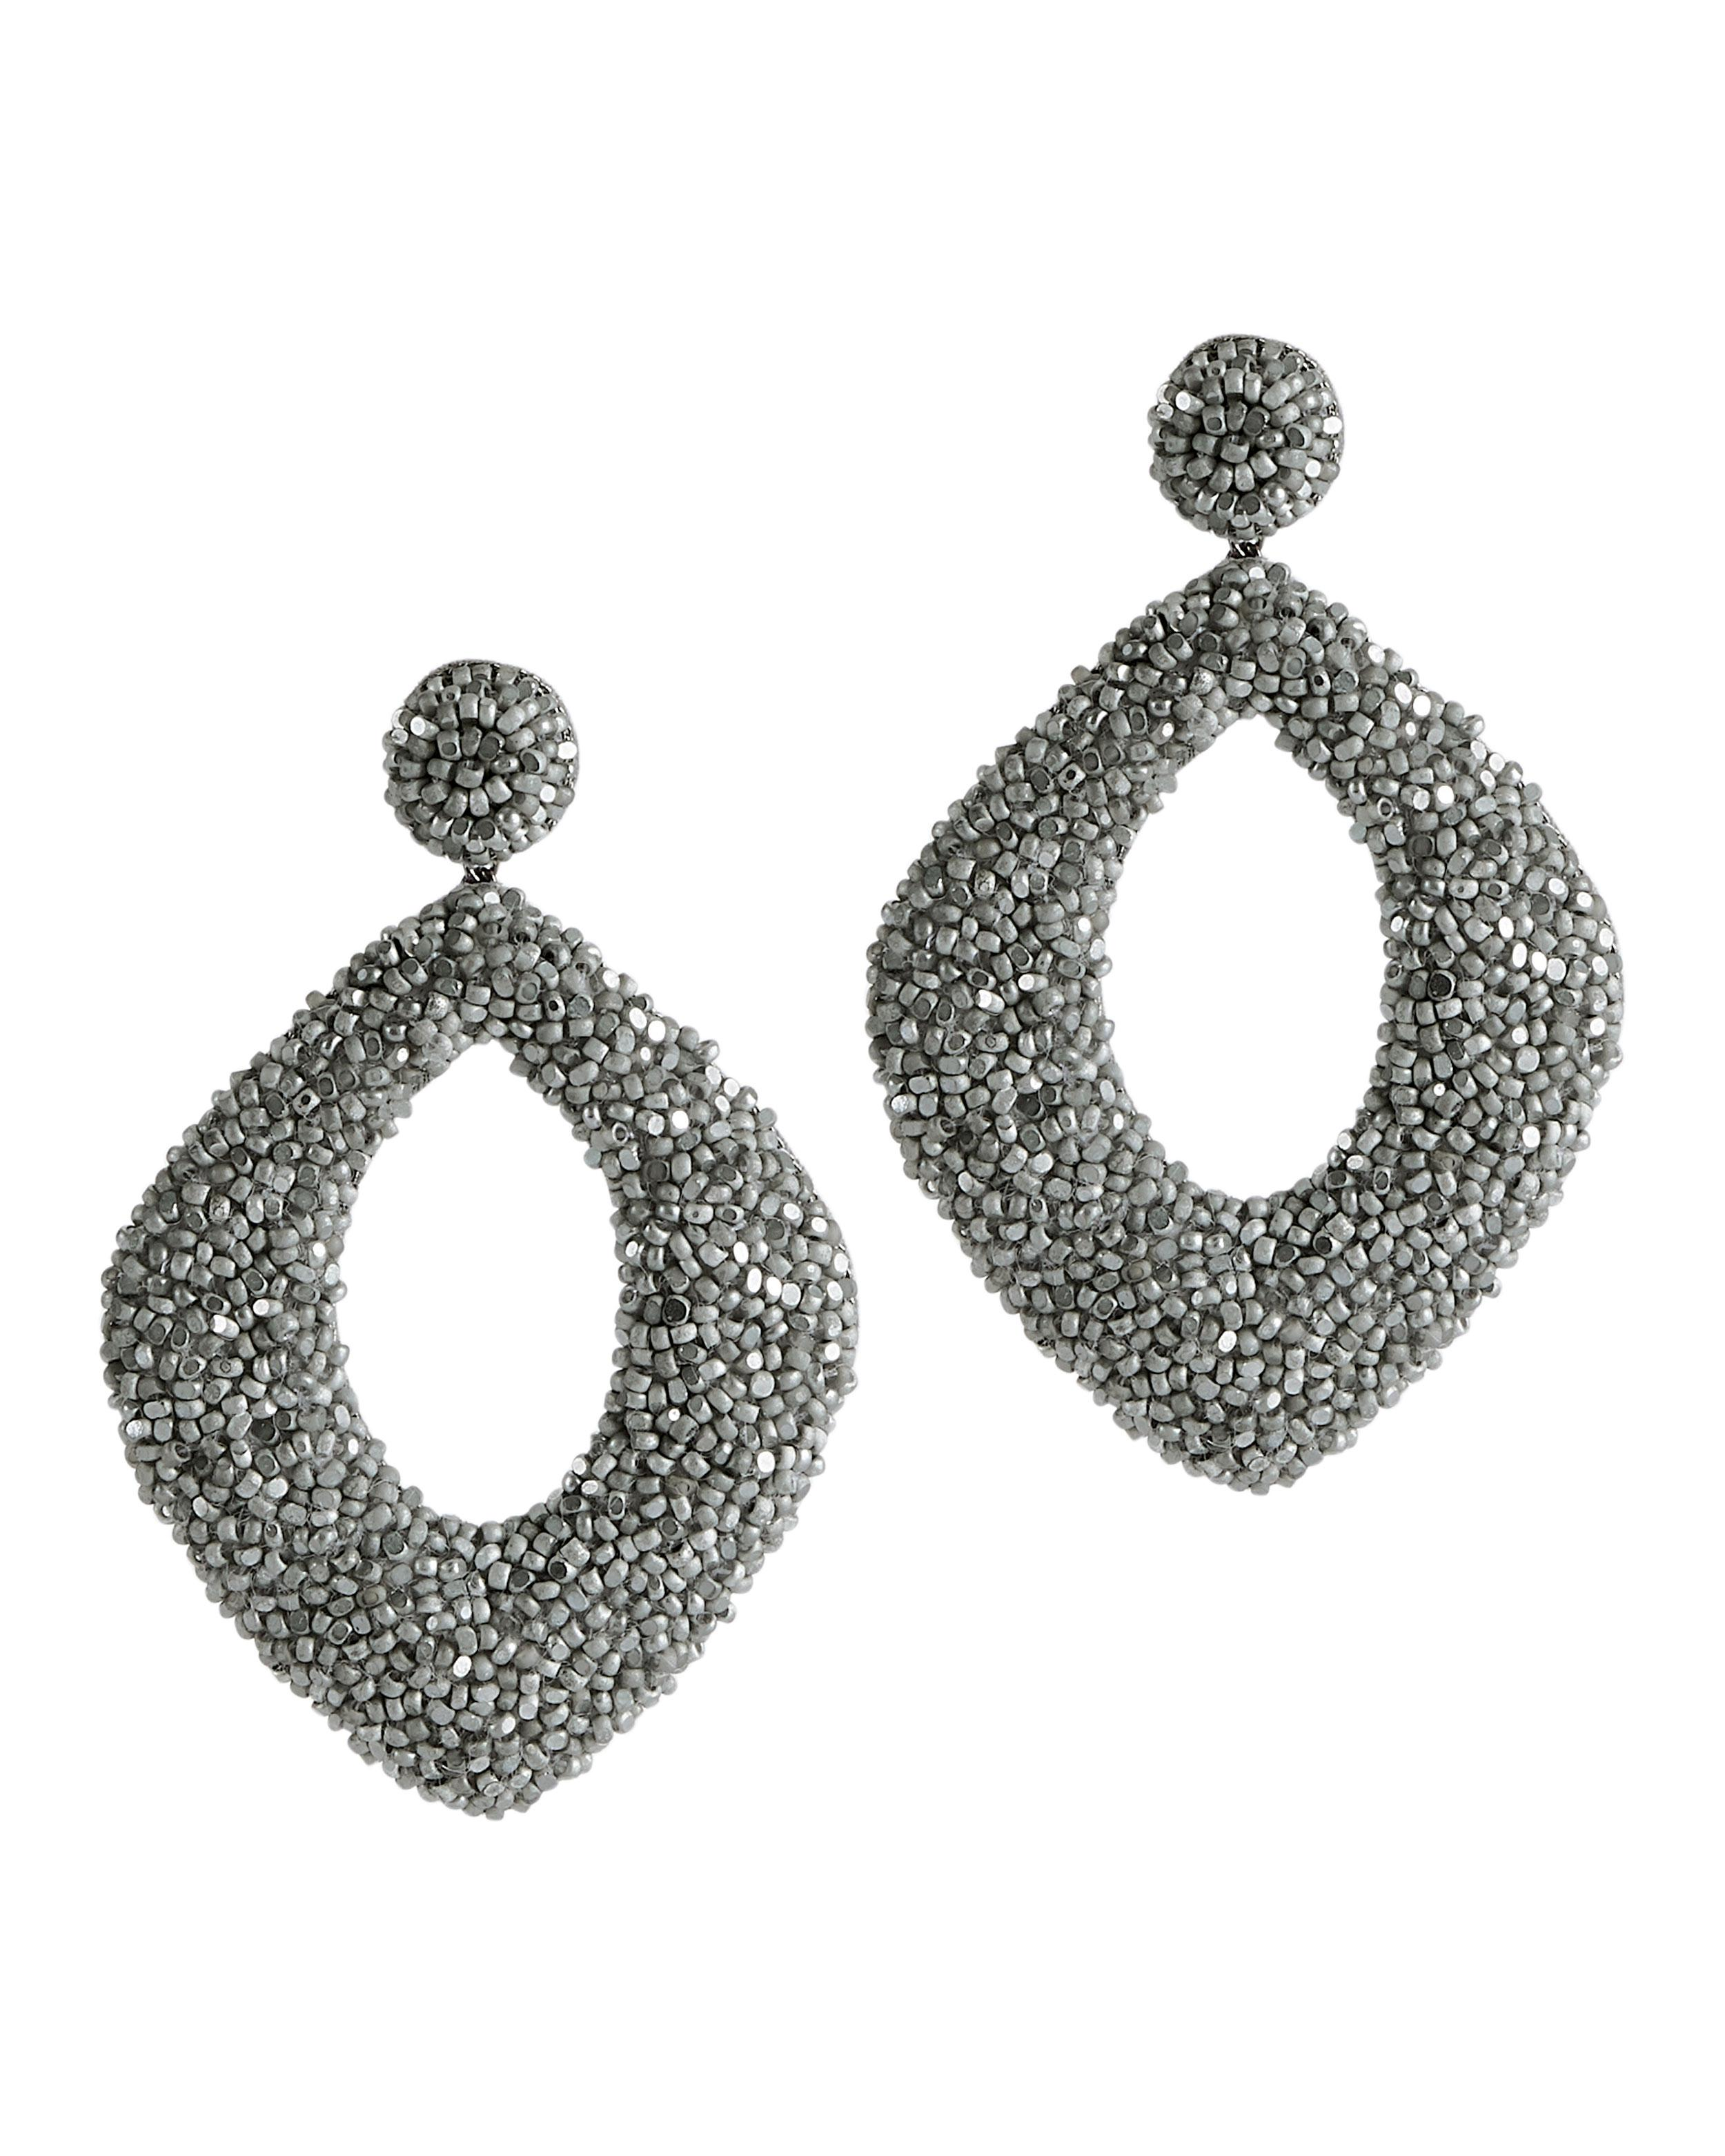 earrings shop jewelry singh earring product nello star gunmetal main erc amrita